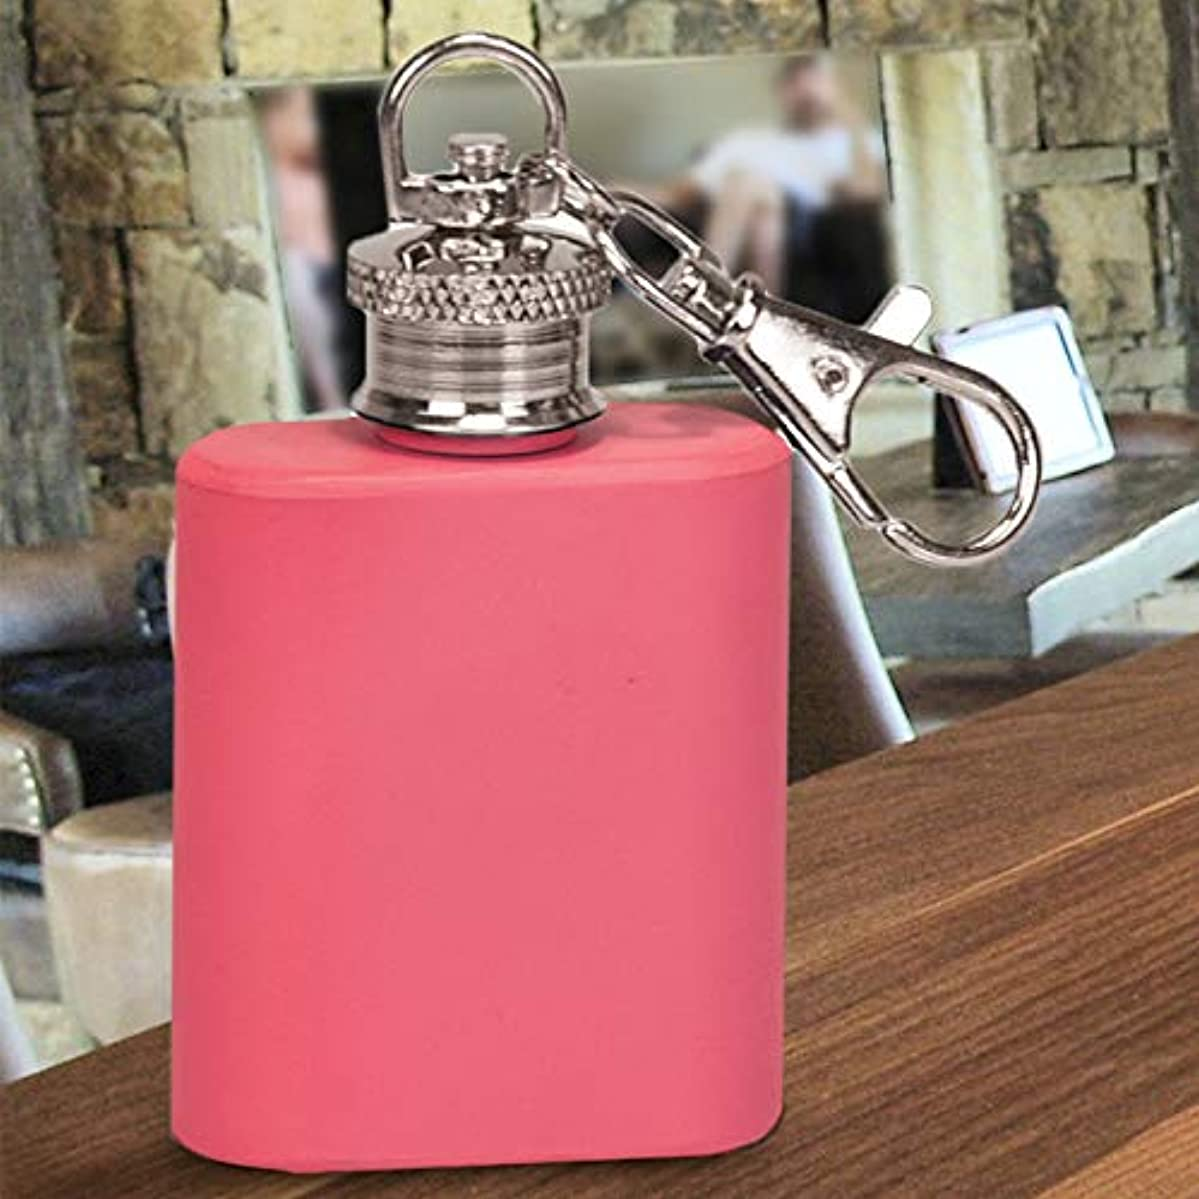 Center Gifts Pink Mini Key Chain Flask 1 Oz Personalized | Stainless Steel Flask Keychain | Wedding Gift for Bridesmaids, Bachelorette Party, Girls Night Out | Engrave with Name or Message